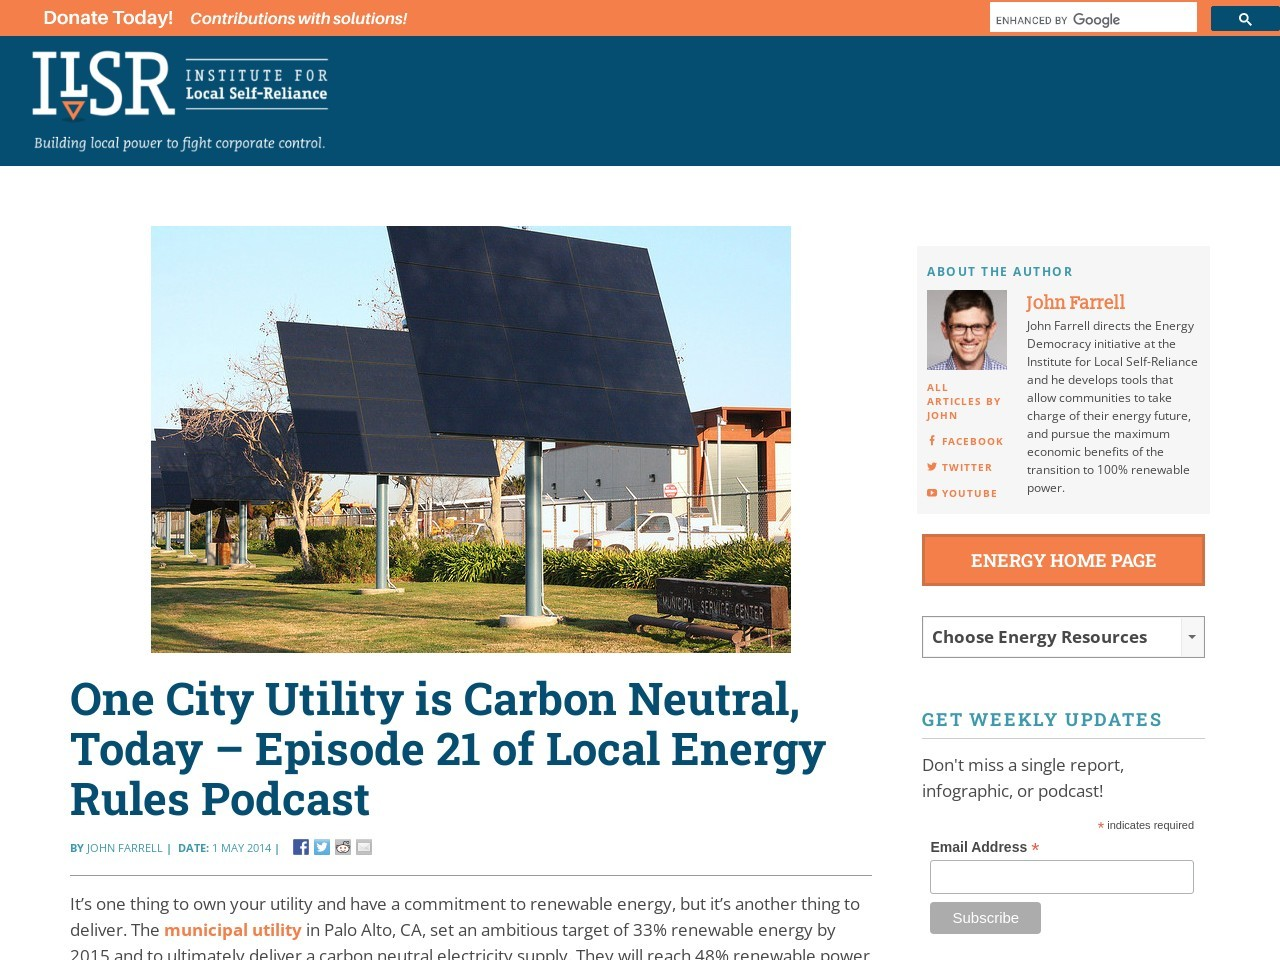 One City Utility is Carbon Neutral, Today